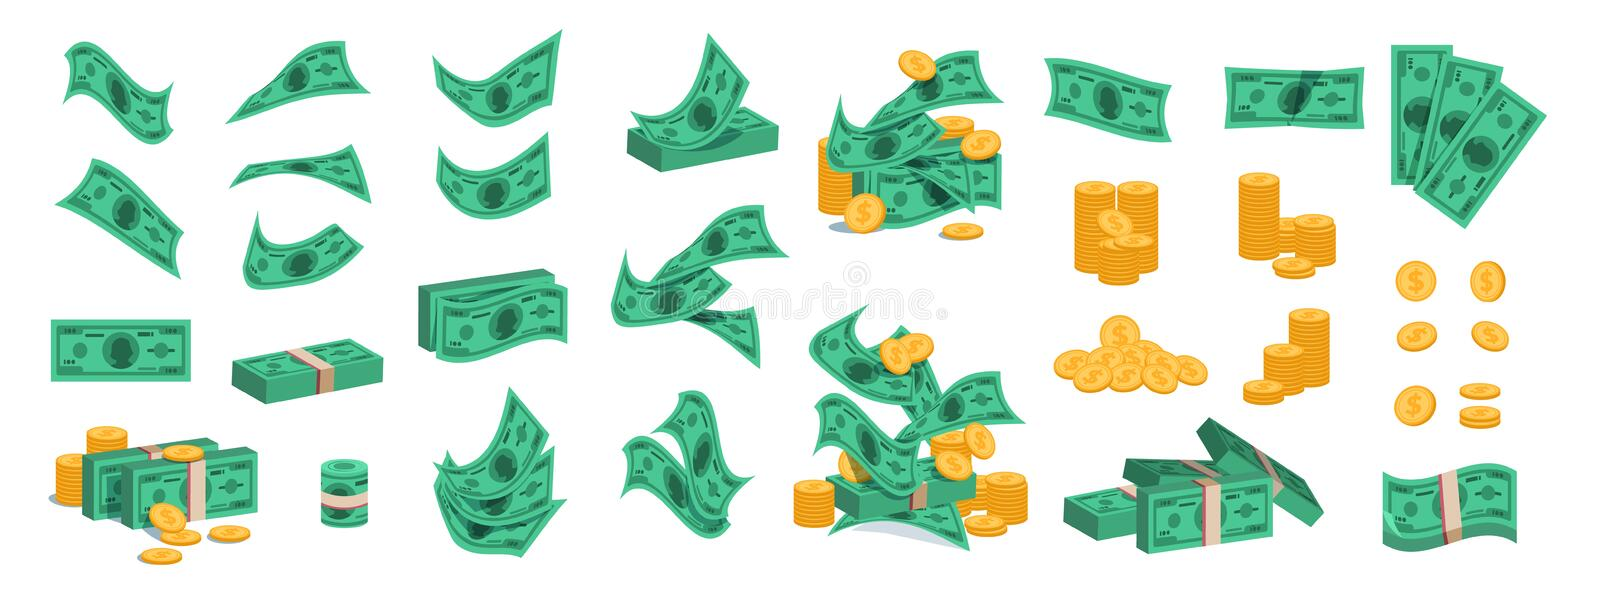 Bundle of money. Golden coins and green dollar banknotes, 3D pile of flat money cash. Vector set of currency stack royalty free illustration